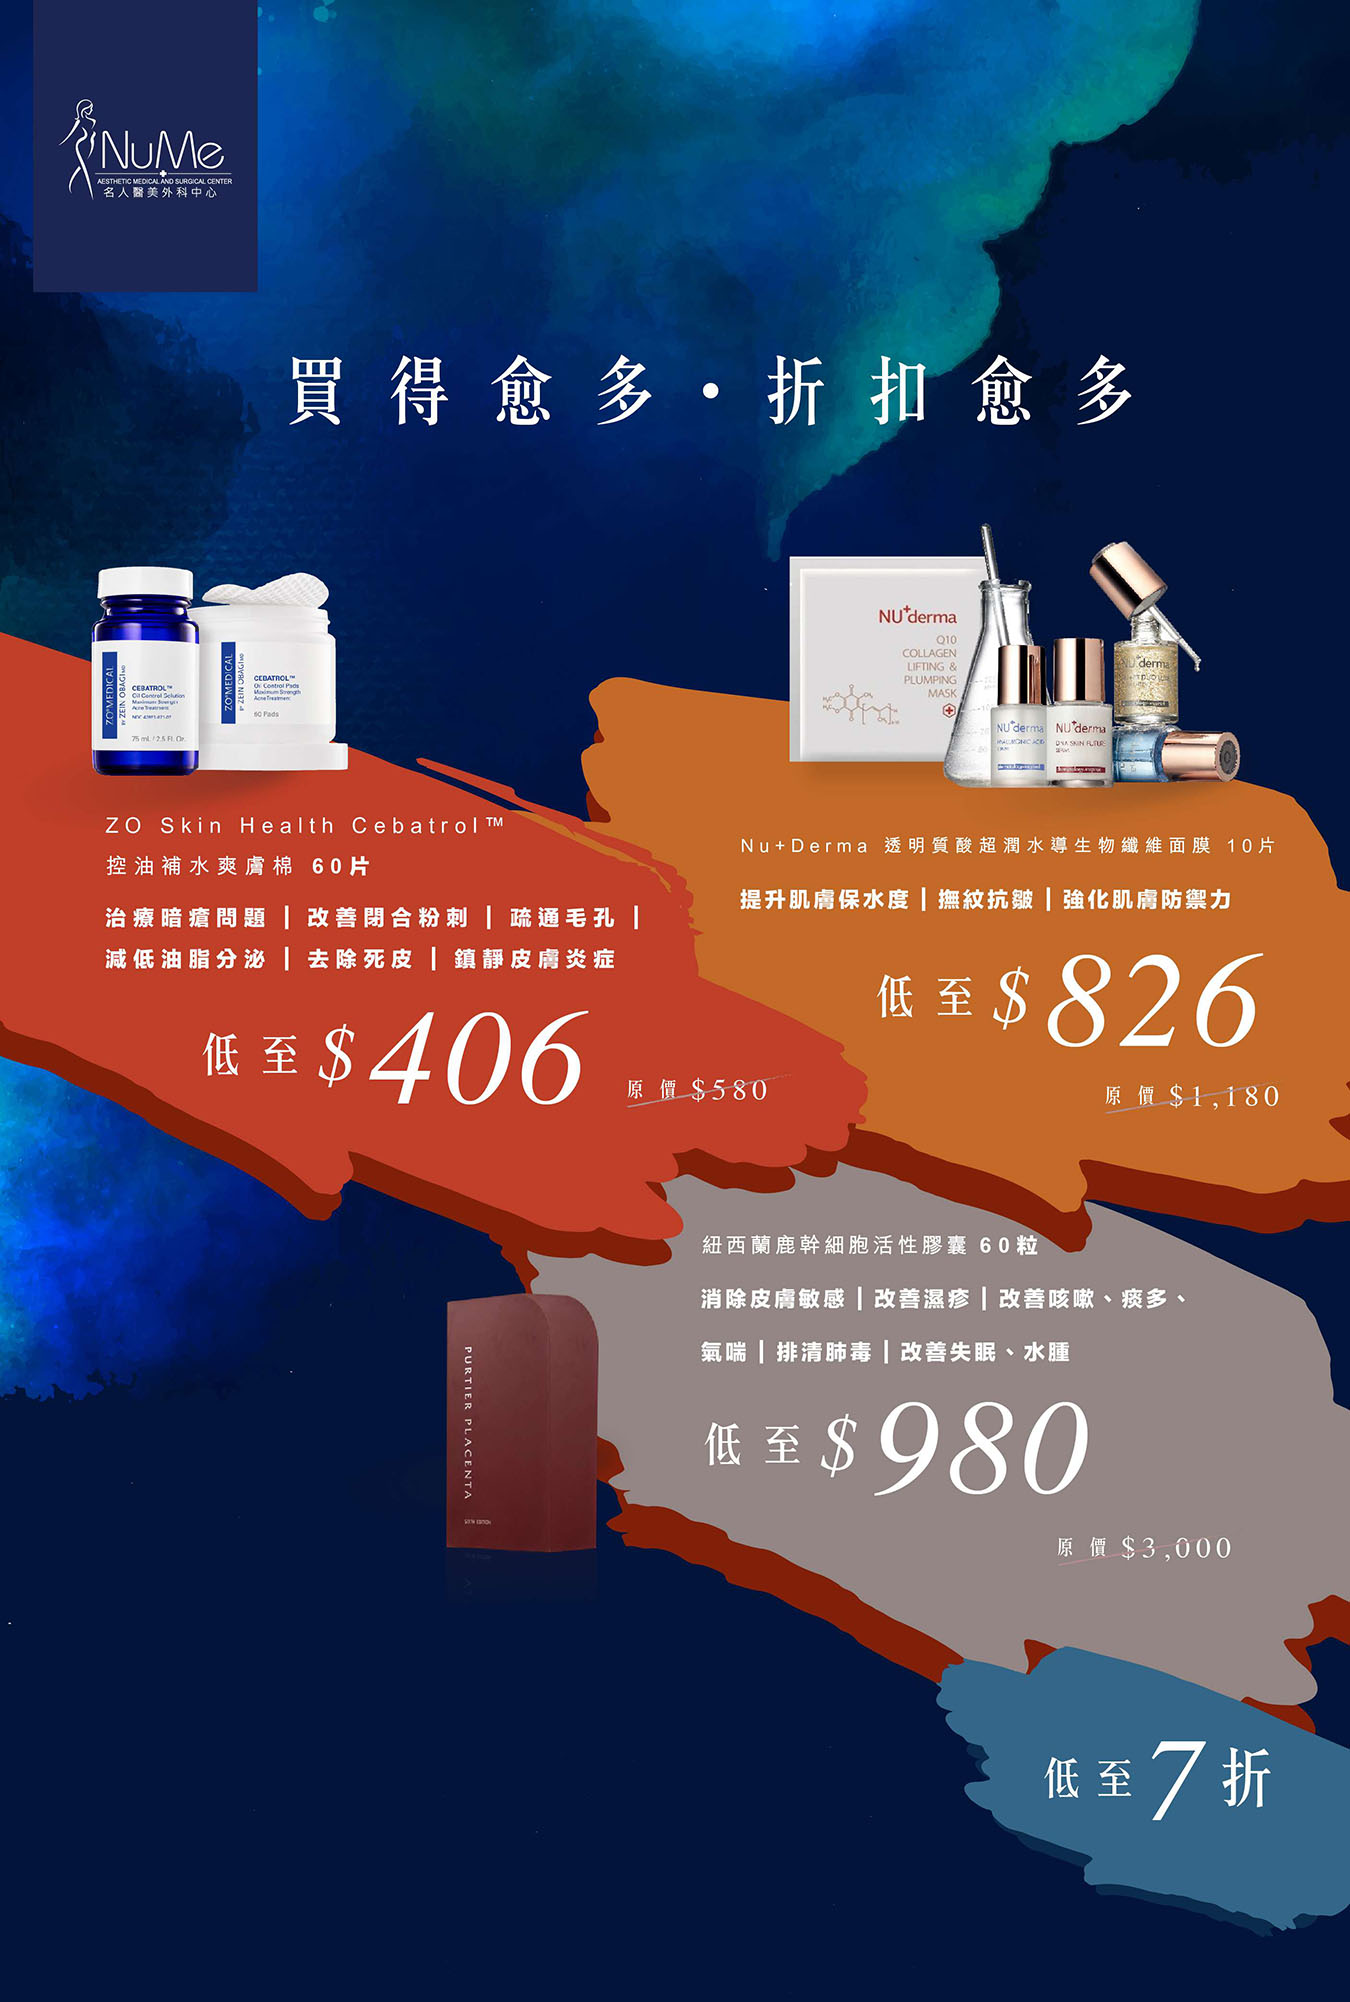 08xx20 Treatment Promotion Sales Kit - Aug to Oct 2020_V3__Page_36.jpg